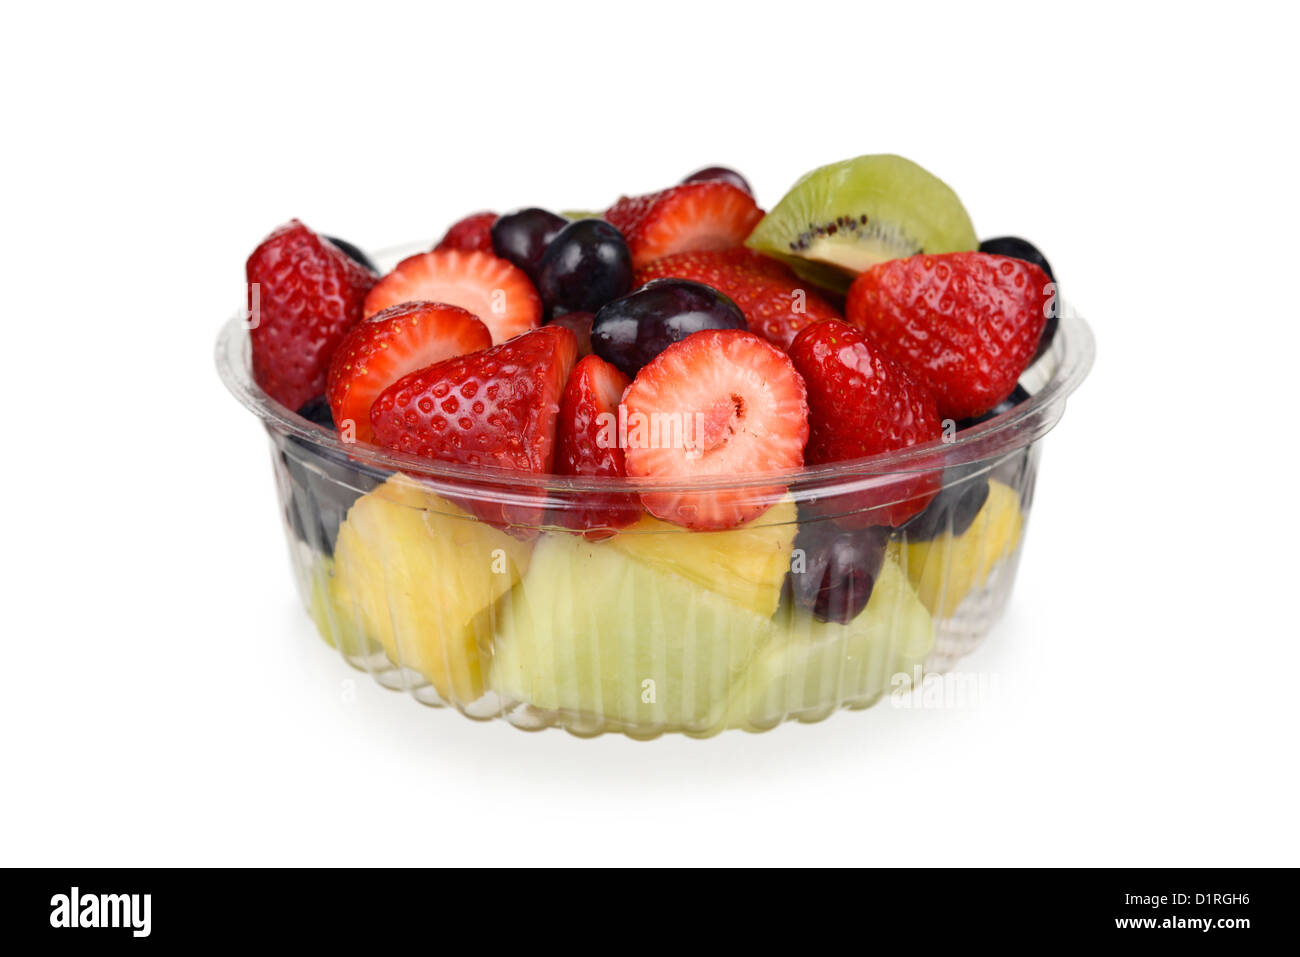 Packaged fruit salad, store bought in plastic container - Stock Image